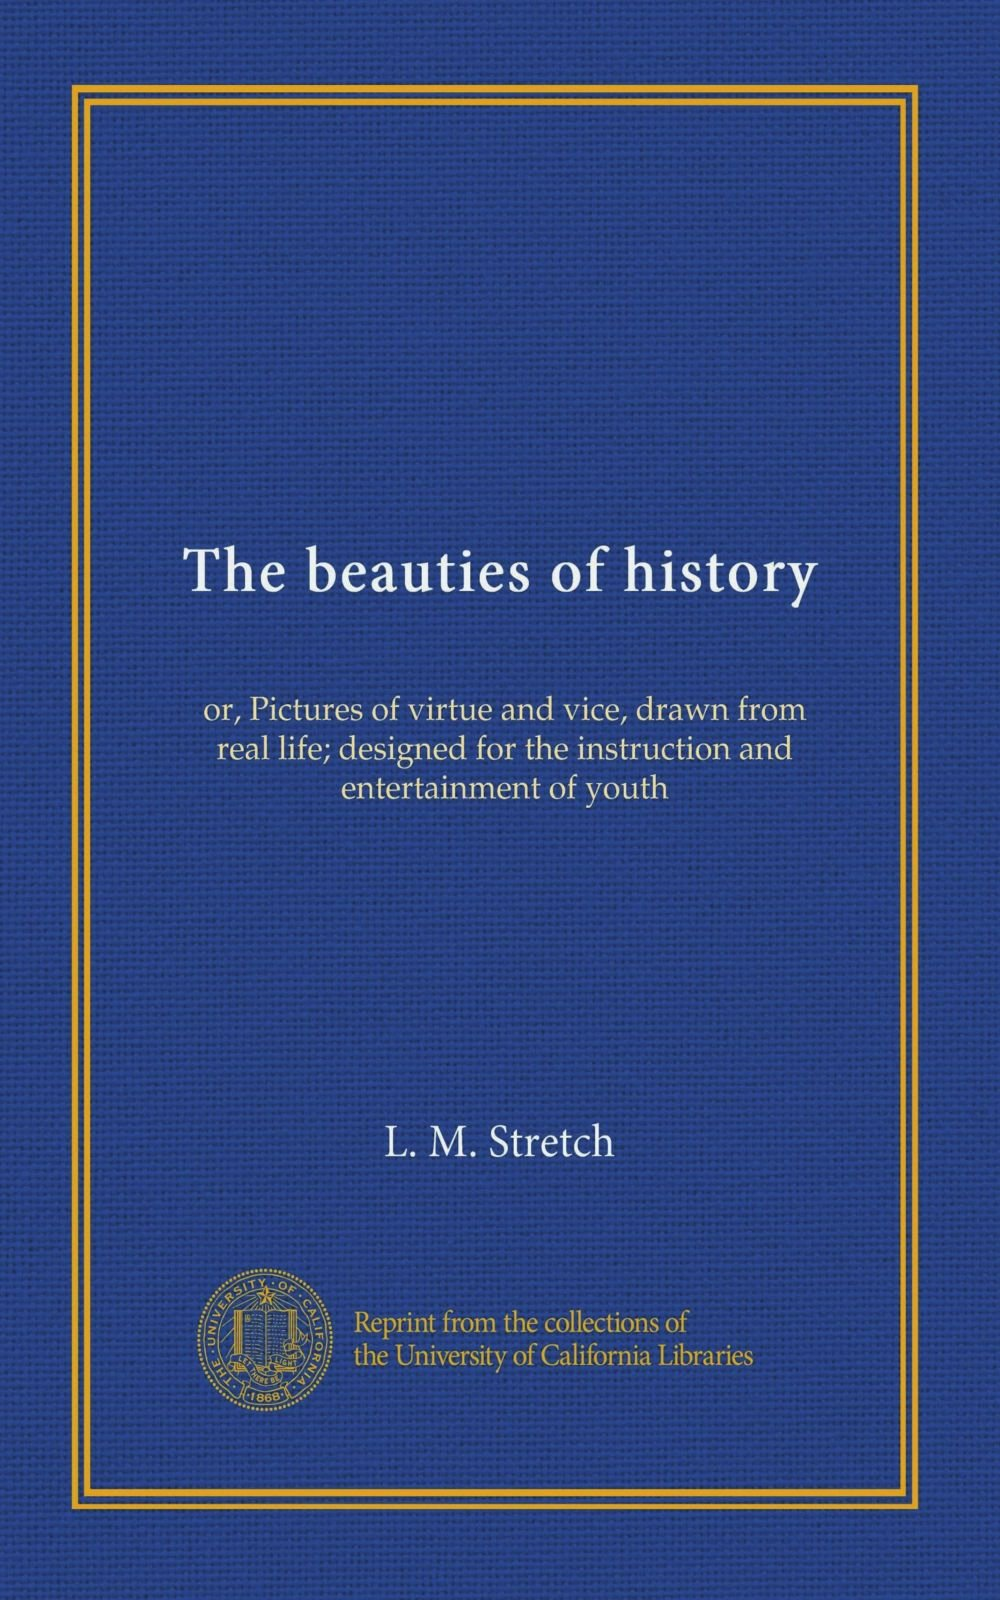 Download The beauties of history: or, Pictures of virtue and vice, drawn from real life; designed for the instruction and entertainment of youth pdf epub